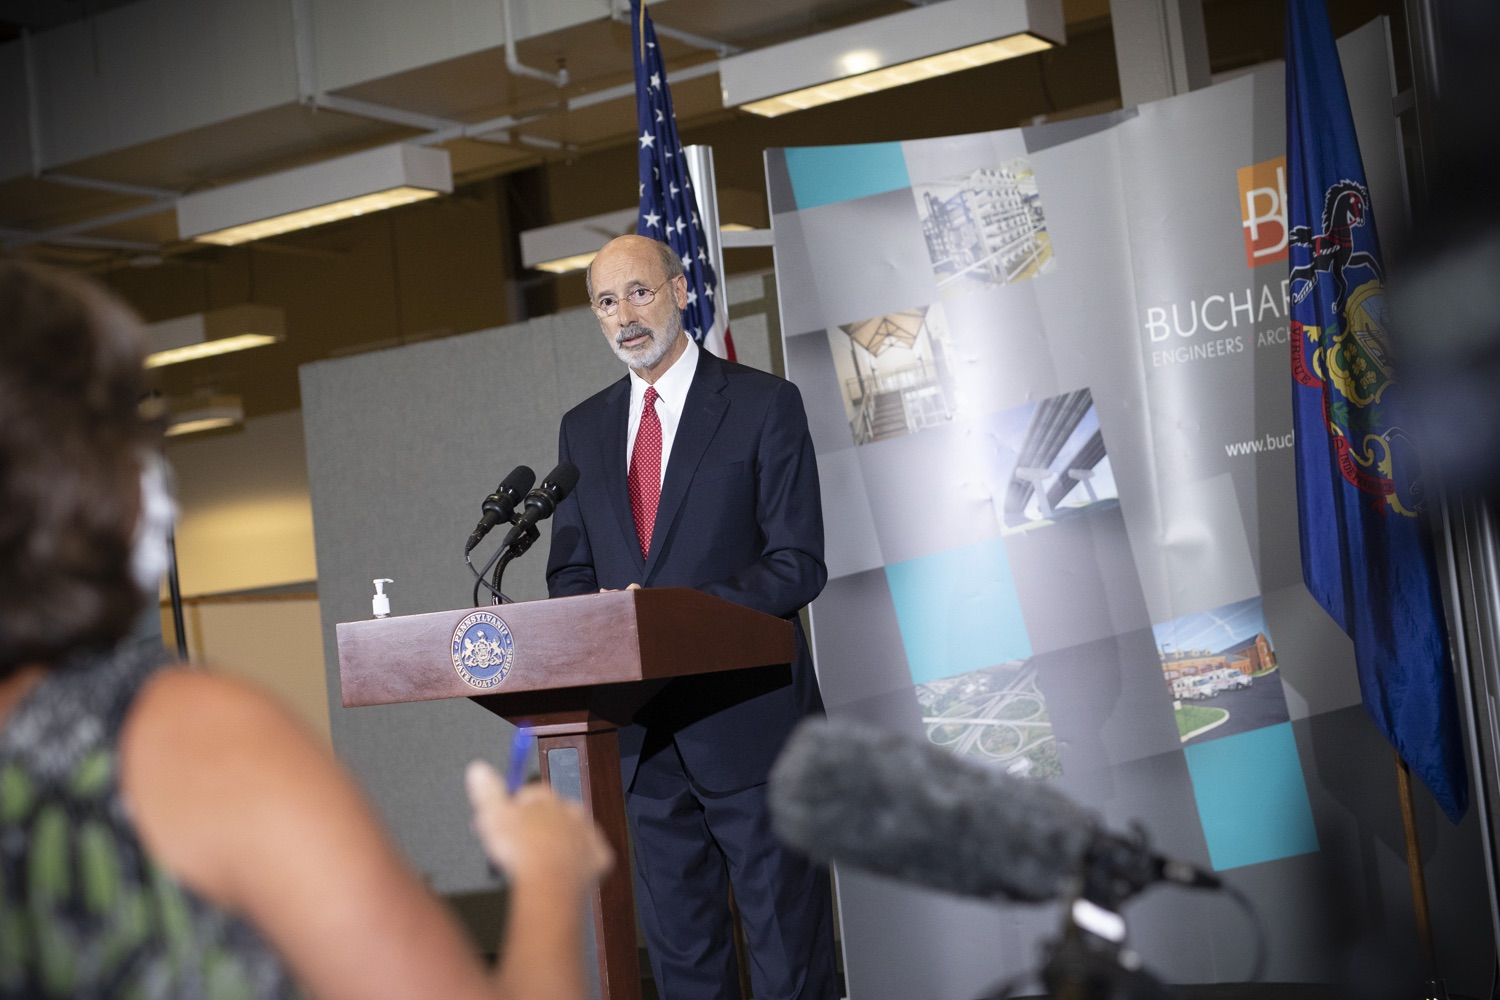 "<a href=""https://filesource.wostreaming.net/commonwealthofpa/photo/18250_gov_covidFunding_dz_013.jpg"" target=""_blank"">⇣ Download Photo<br></a>Pennsylvania Governor Tom Wolf speaking to the press.  As small businesses continue to feel an economic impact of the COVID-19 public health crisis, Governor Tom Wolf today called on the General Assembly to provide additional funding to support these businesses. The governor was joined by the York County Economic Alliance, local elected officials and business advocates.  York, PA  September 10, 2020"